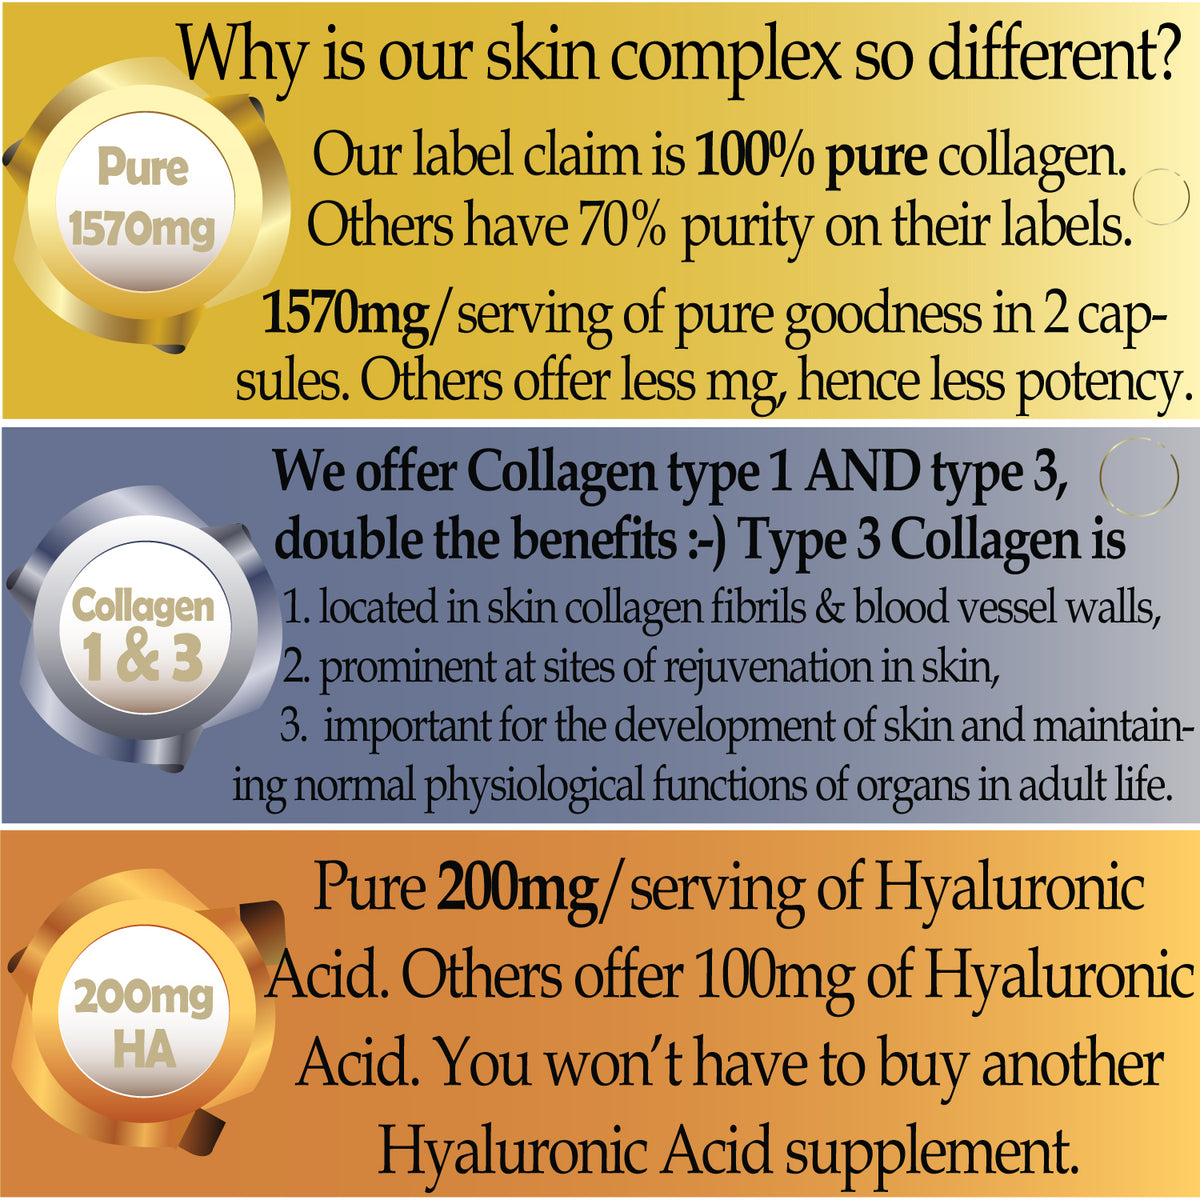 Hydrolyzed Marine Collagen Type 1&3 & Hyaluronic Acid with Vitamins C, E, B2, Copper, Zinc & Iodine